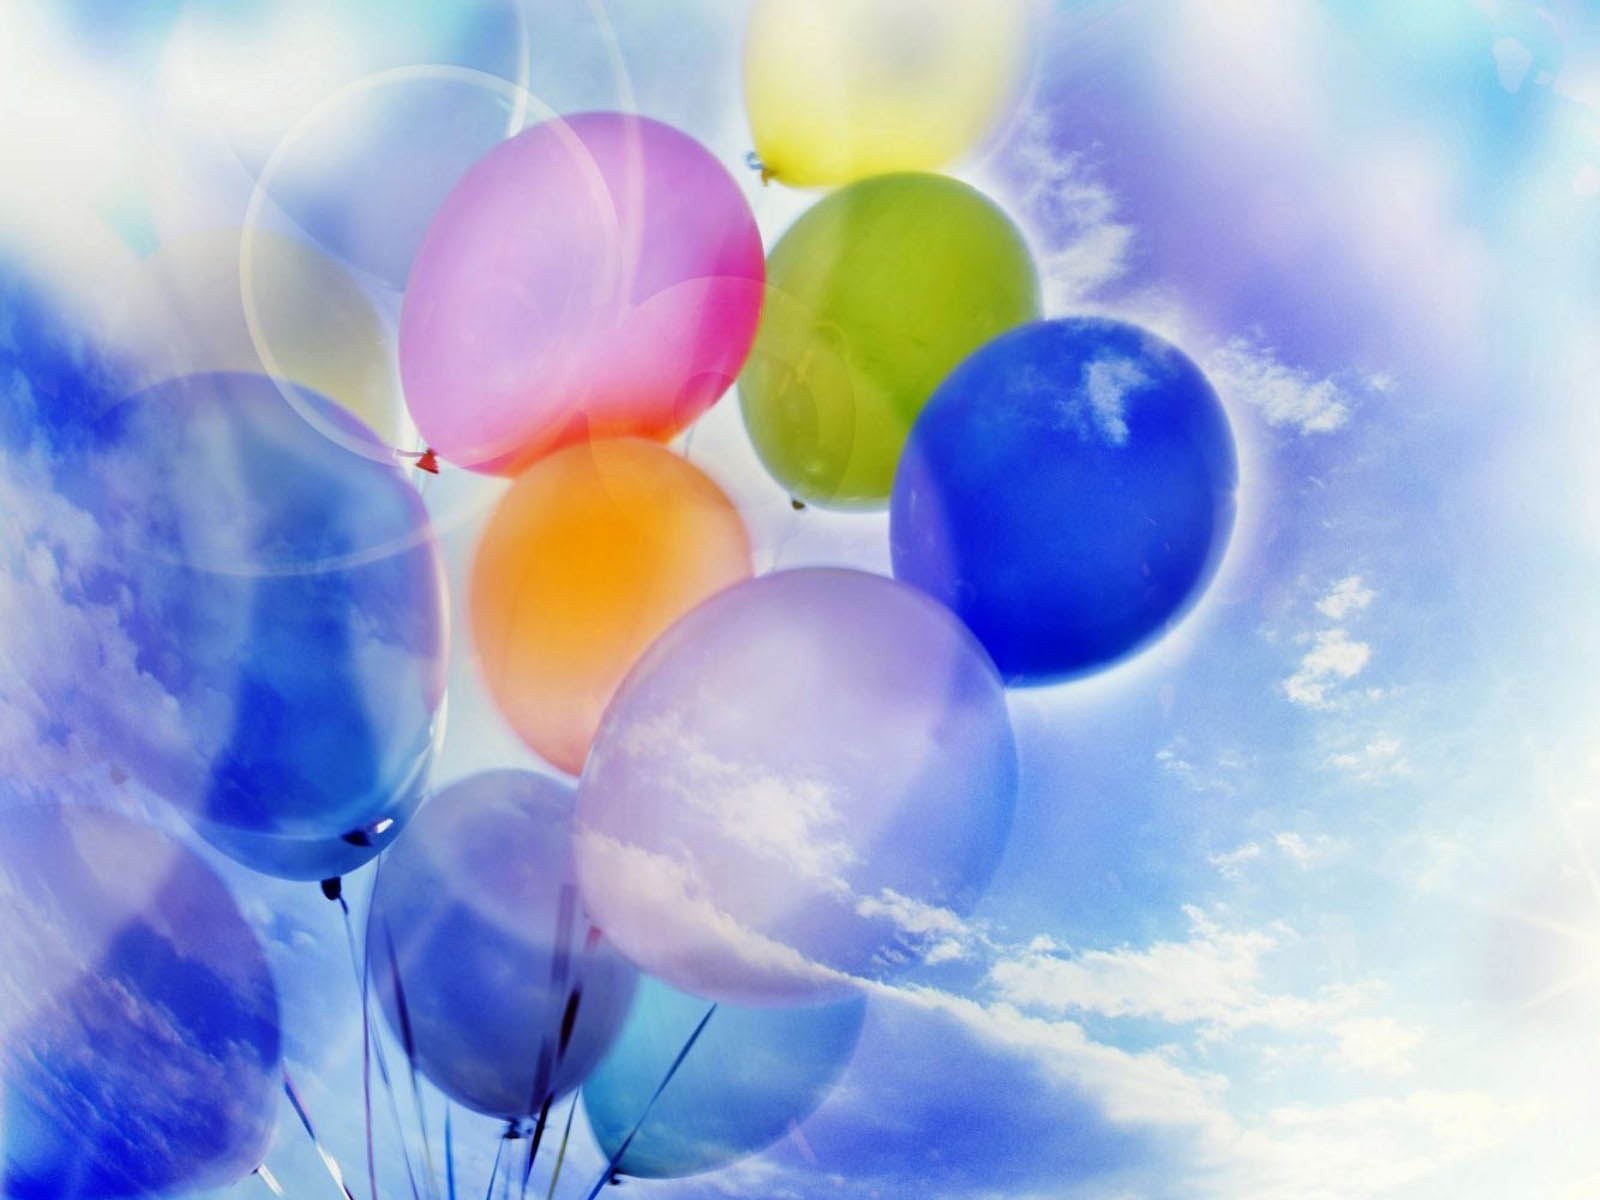 balloons wallpapers - photo #1